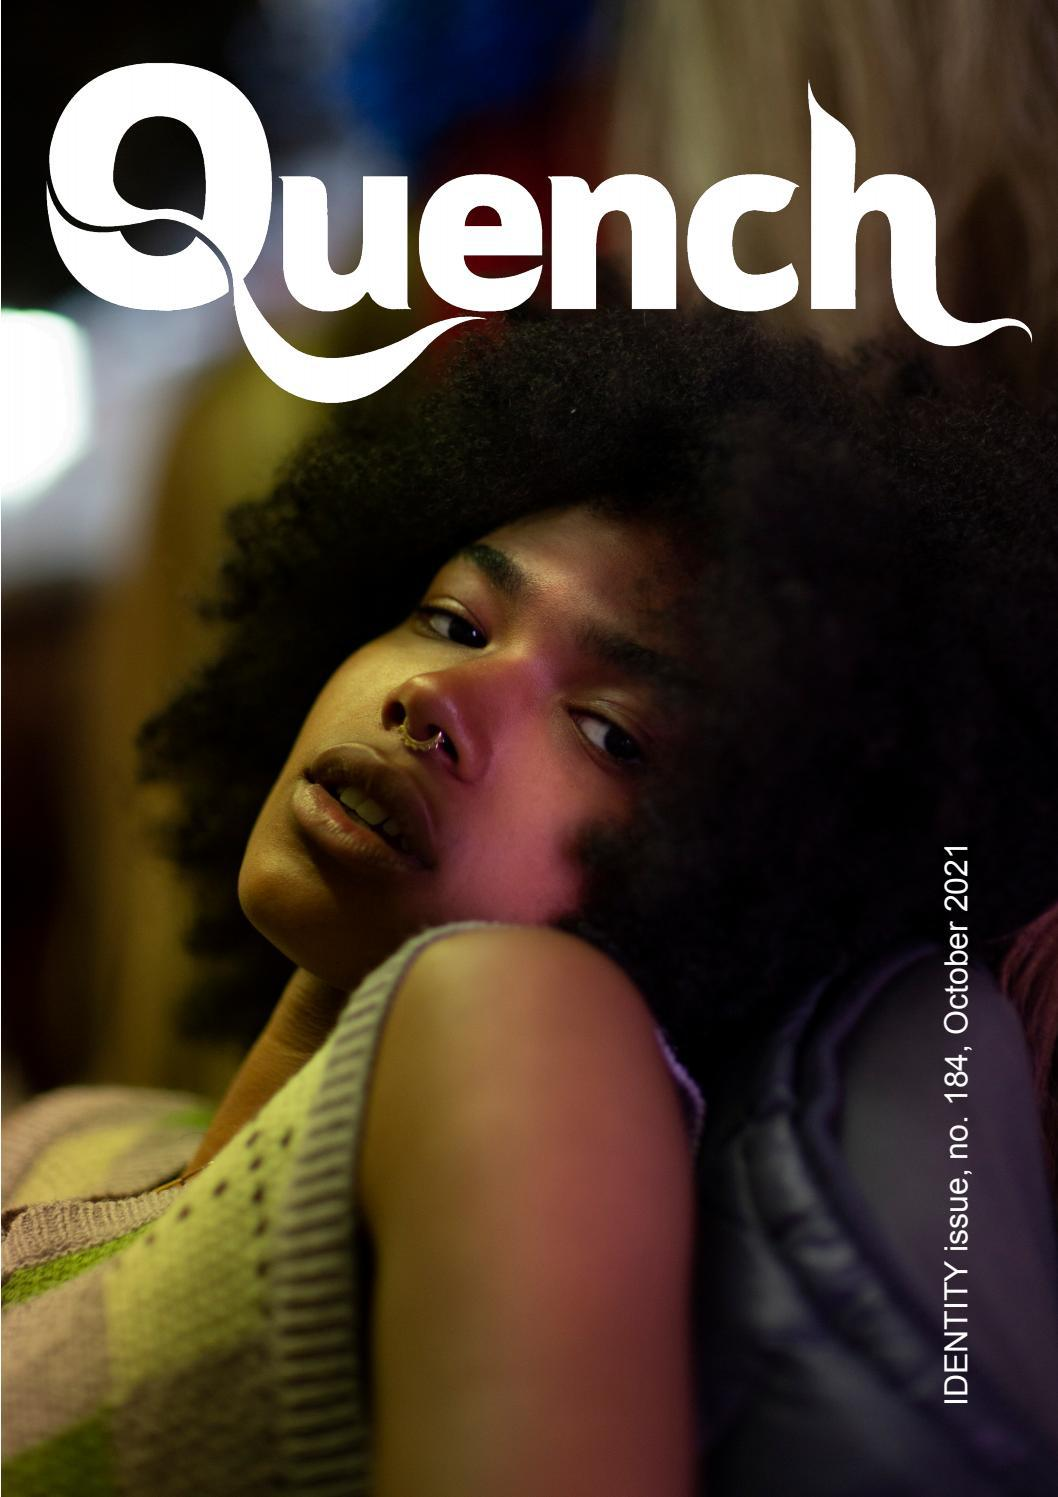 Quench Magazine Issue 184, October 2021